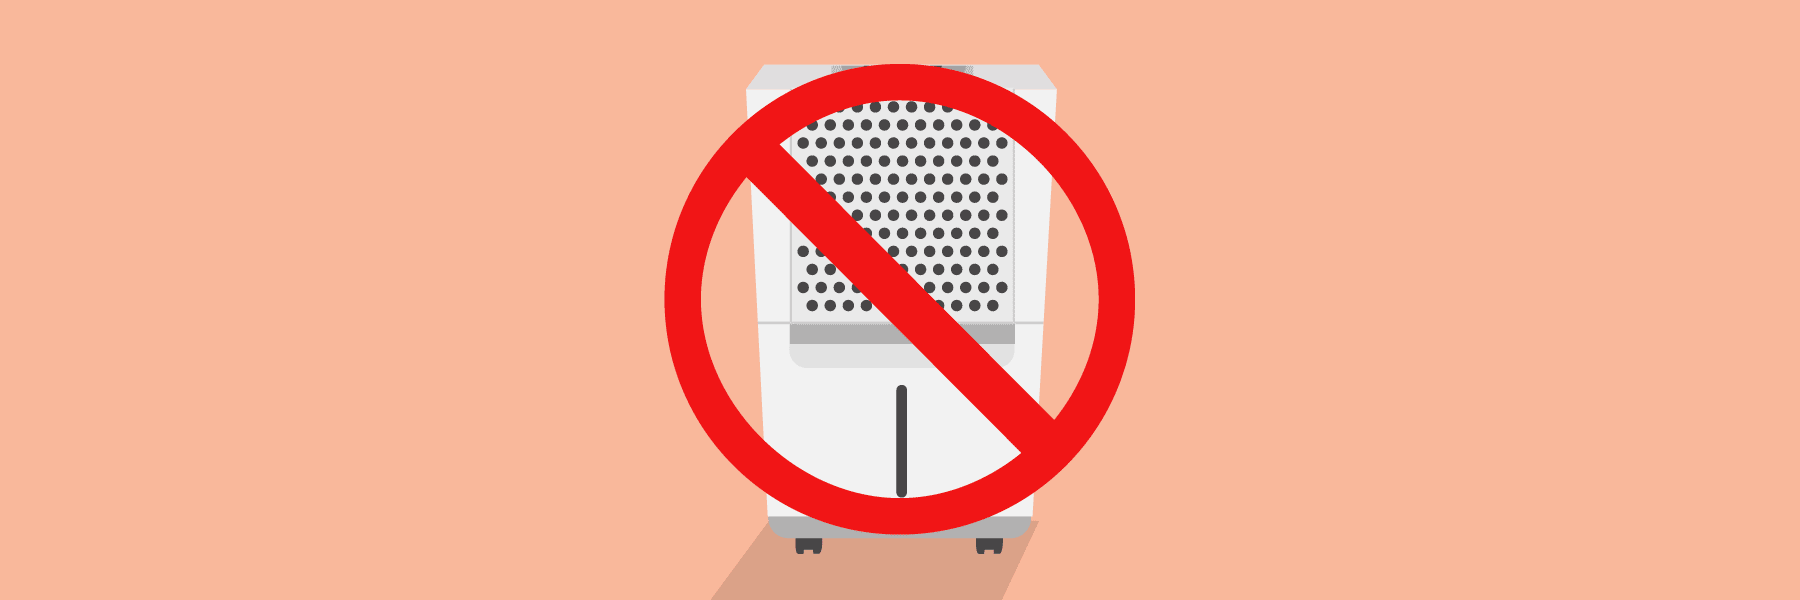 How to Remove Humidity From a Room Without a Dehumidifier